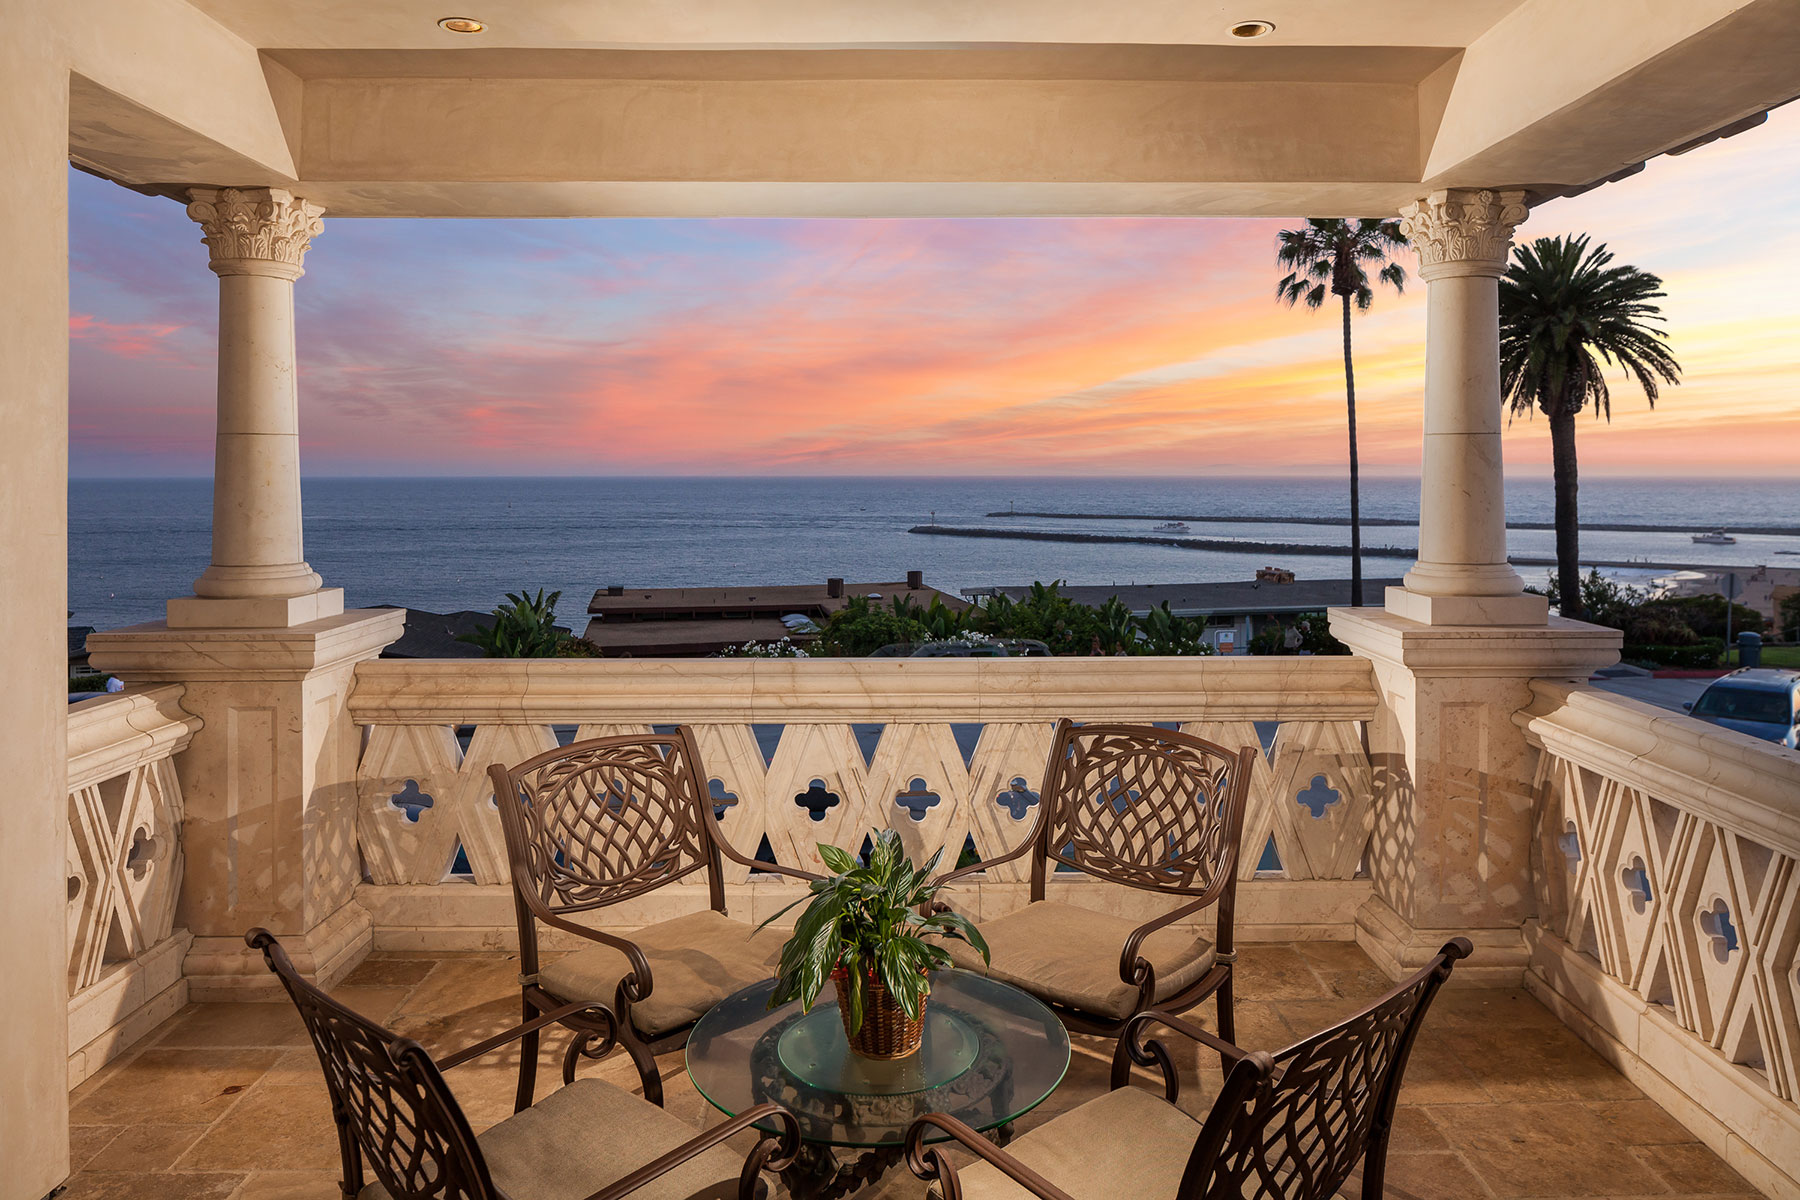 Single Family Home for Sale at 3300 Ocean Bvld Corona Del Mar, California 92625 United States